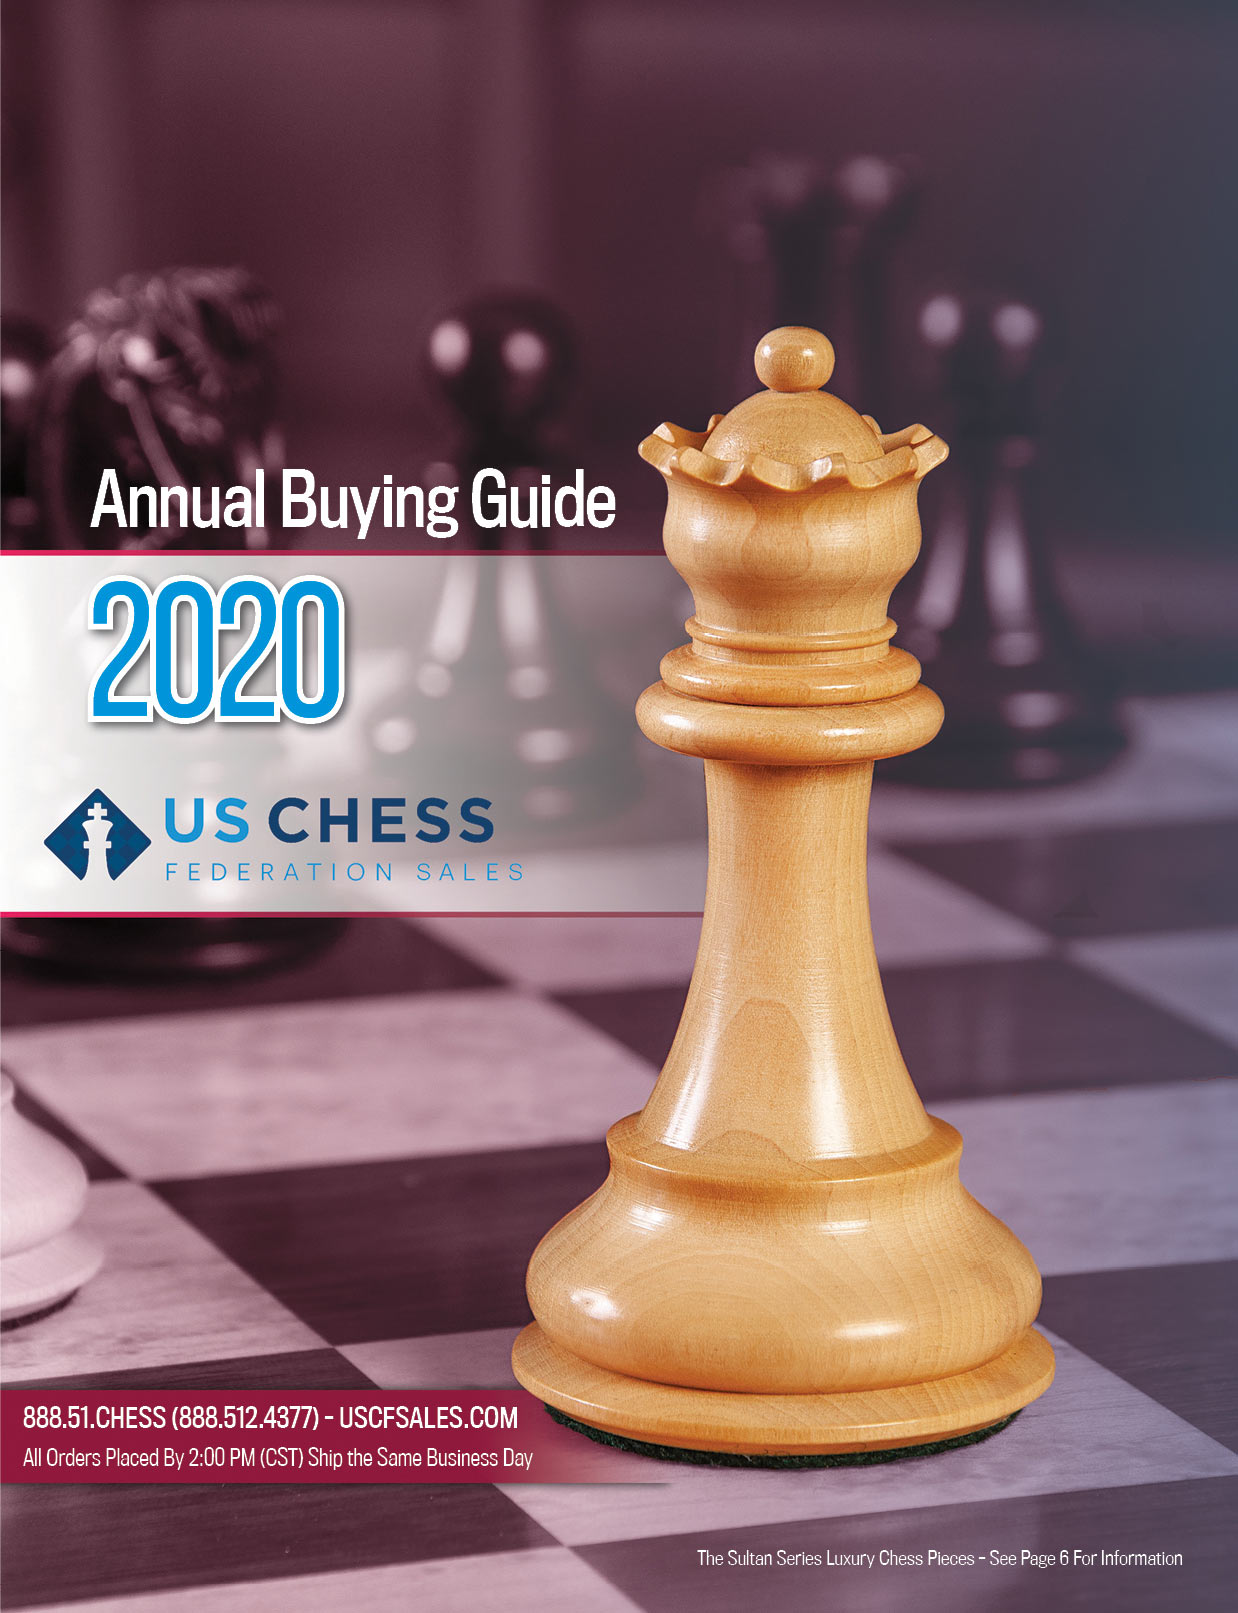 2020 Annual Buying Guide